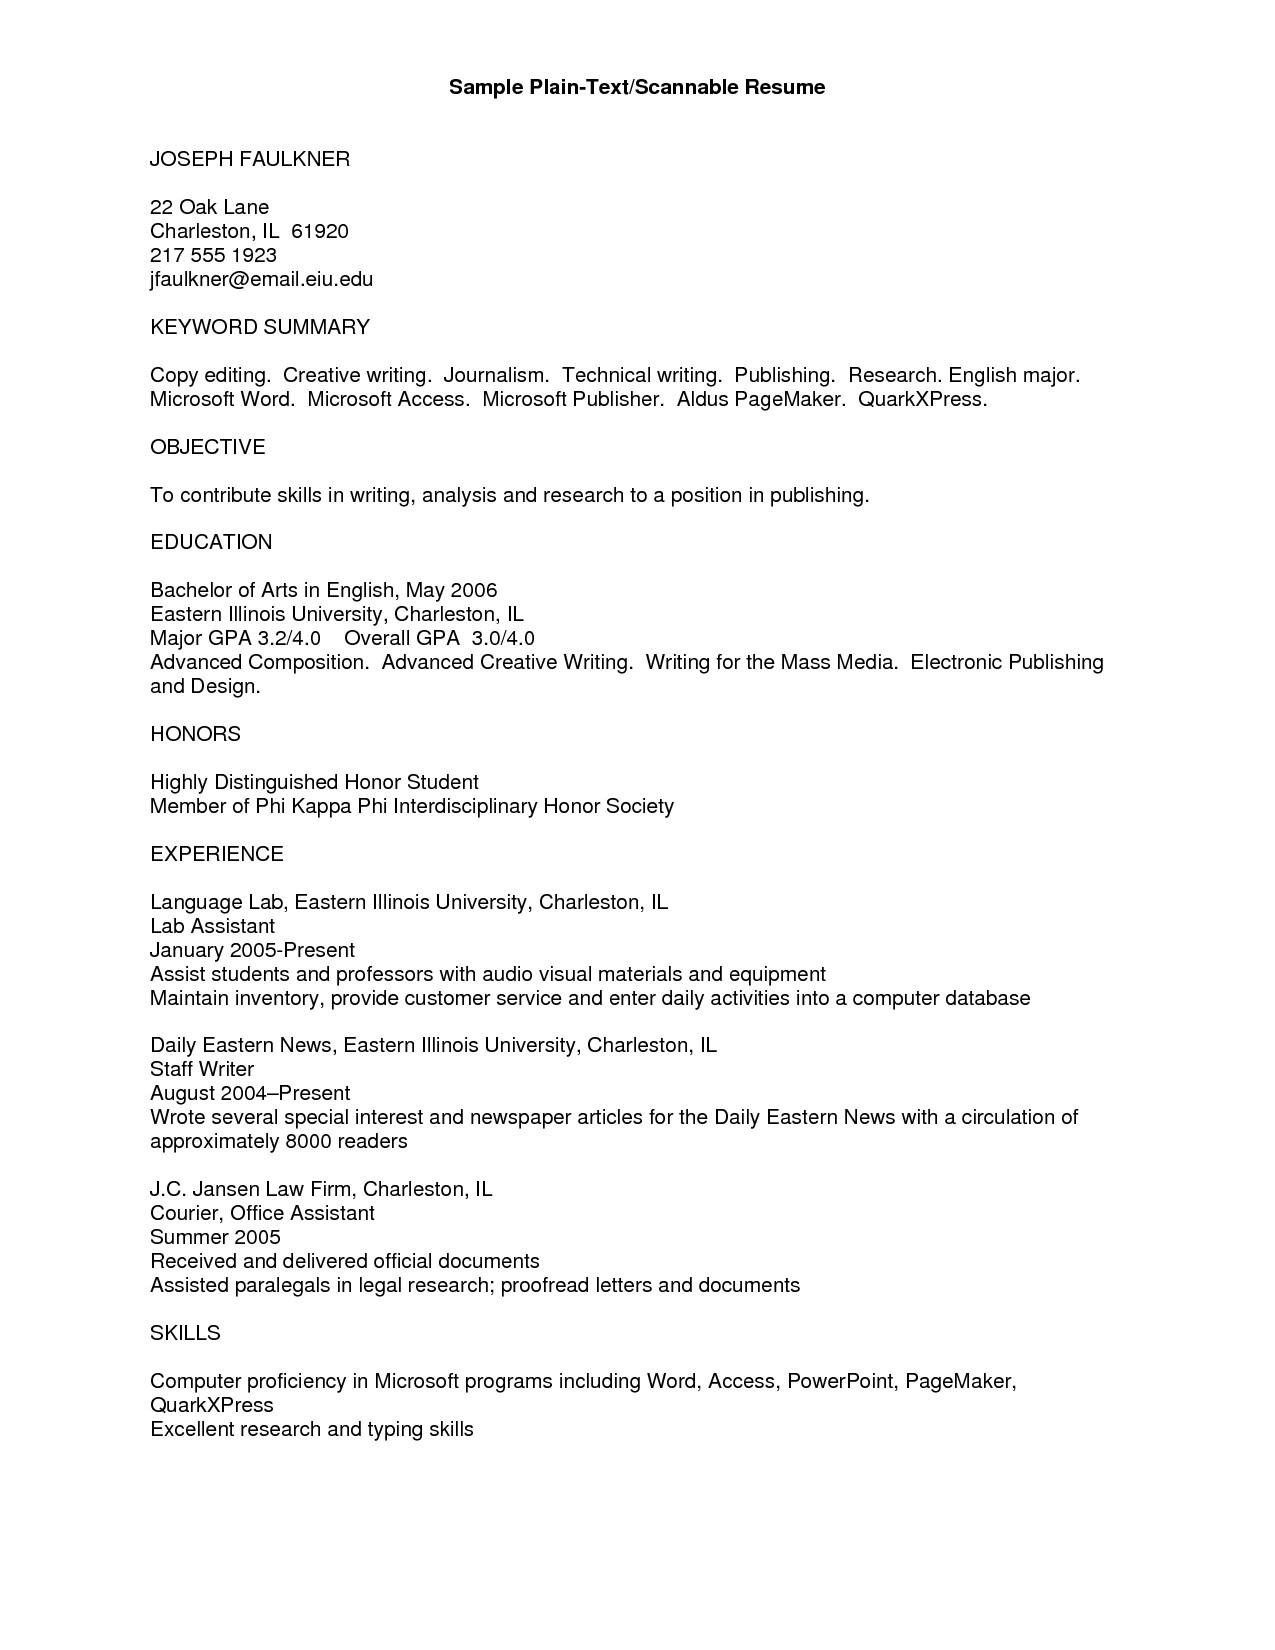 plain text resume template example-Plain Text Format Resume Best Rich Text Format Resume Template At Resume Sample Ideas 16-m